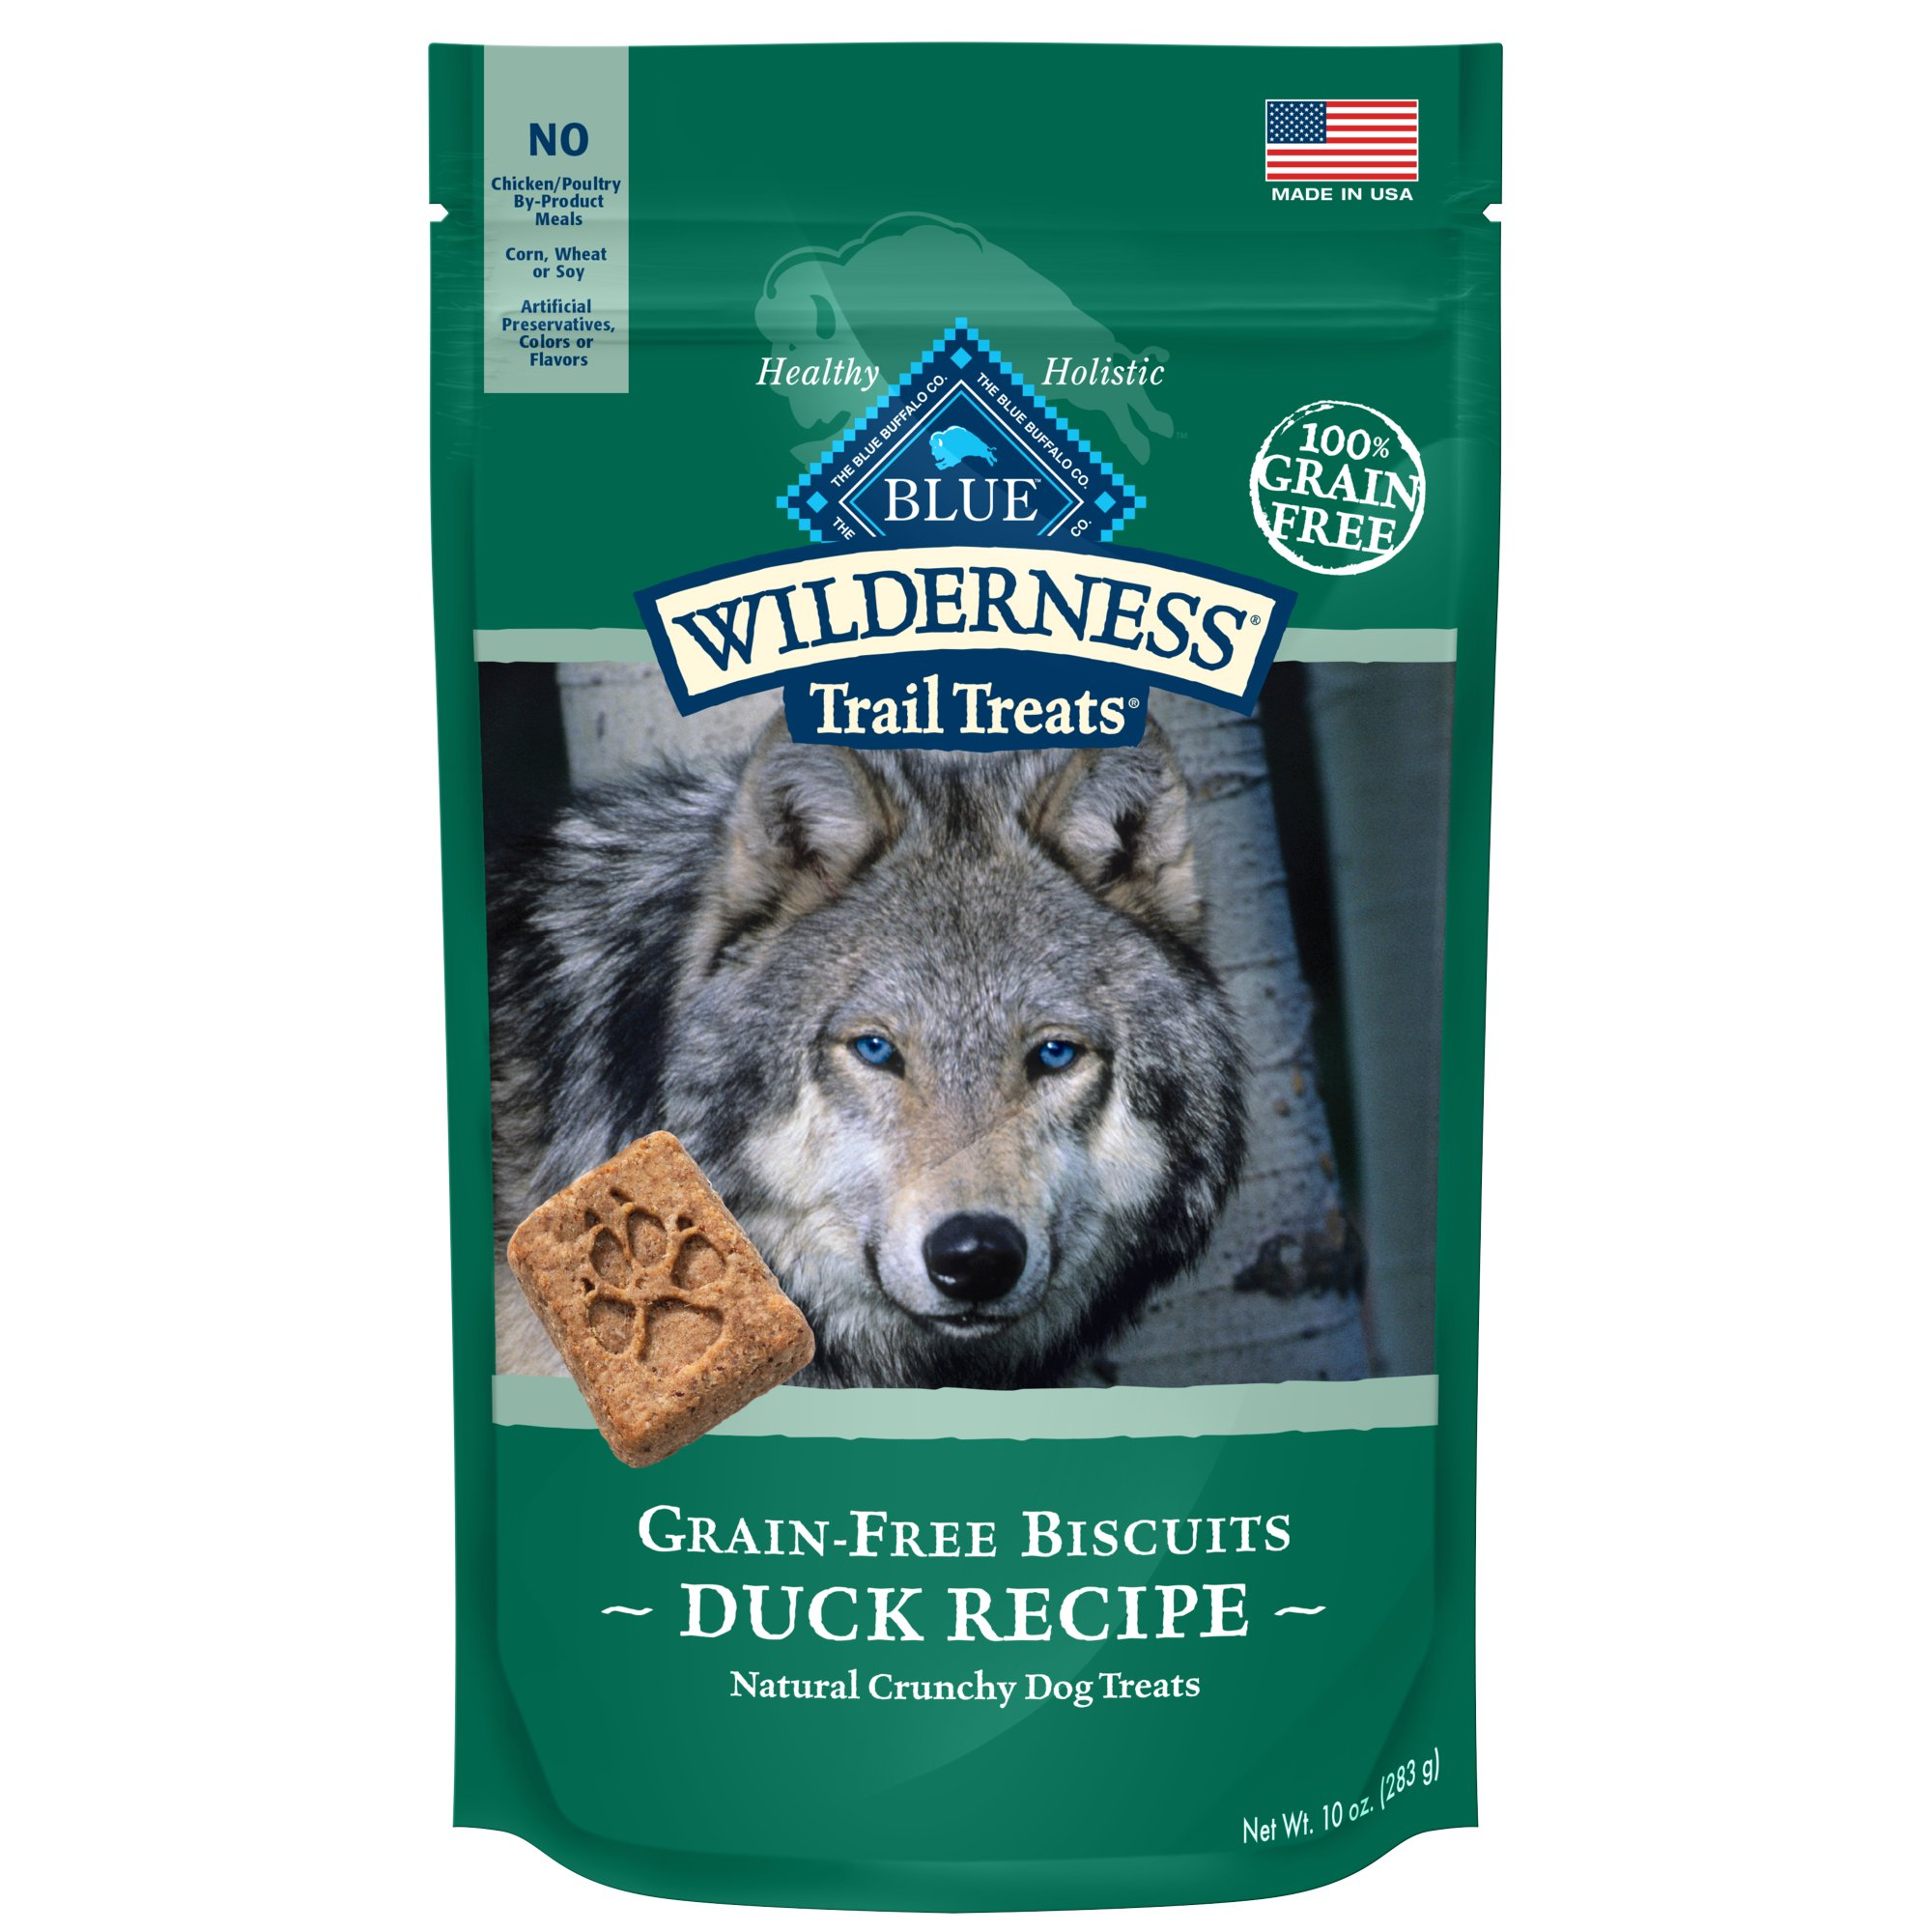 Blue Buffalo Wilderness Trail Treats Grain Free Duck Dog Biscuits